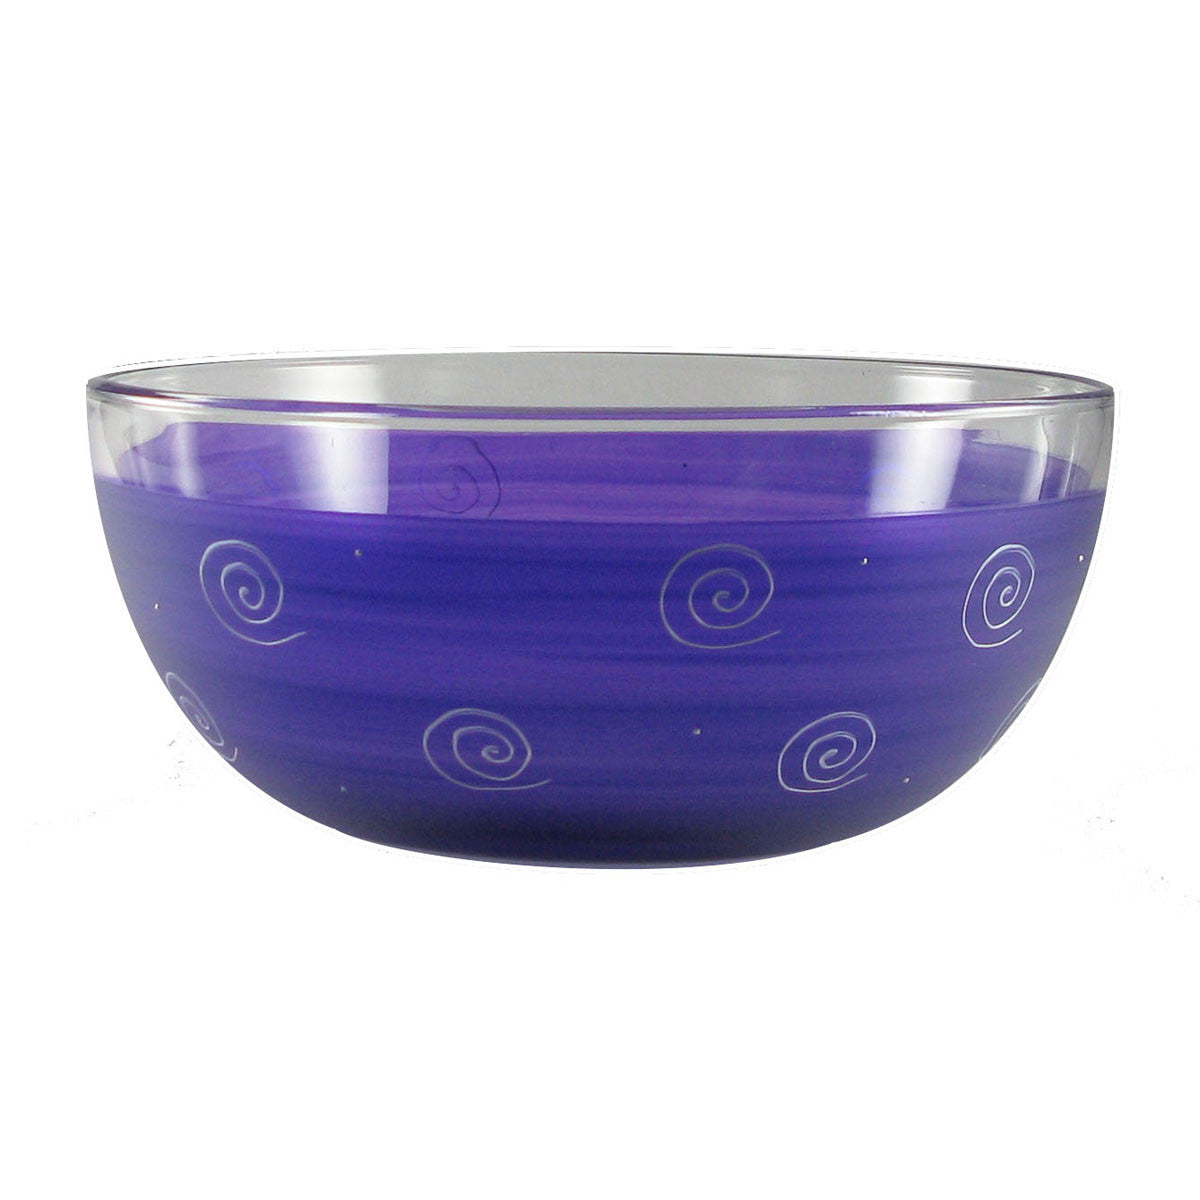 "Frosted Curl/Dot Purple 11"" Bowl - Golden Hill Studio"